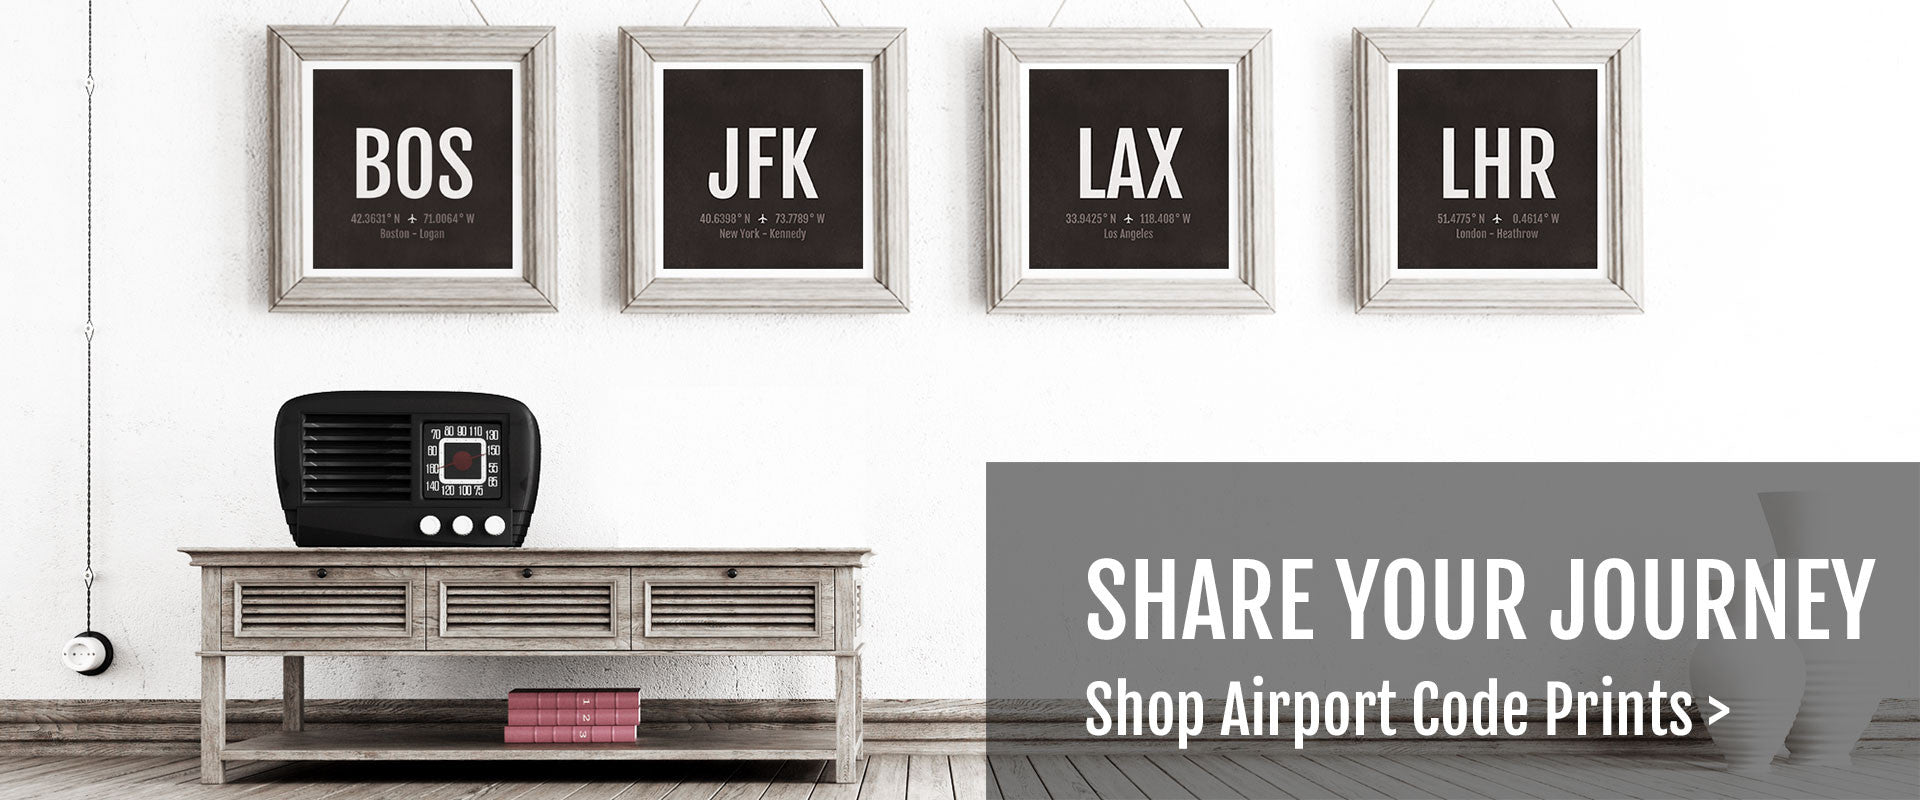 Shop Airport Code Prints